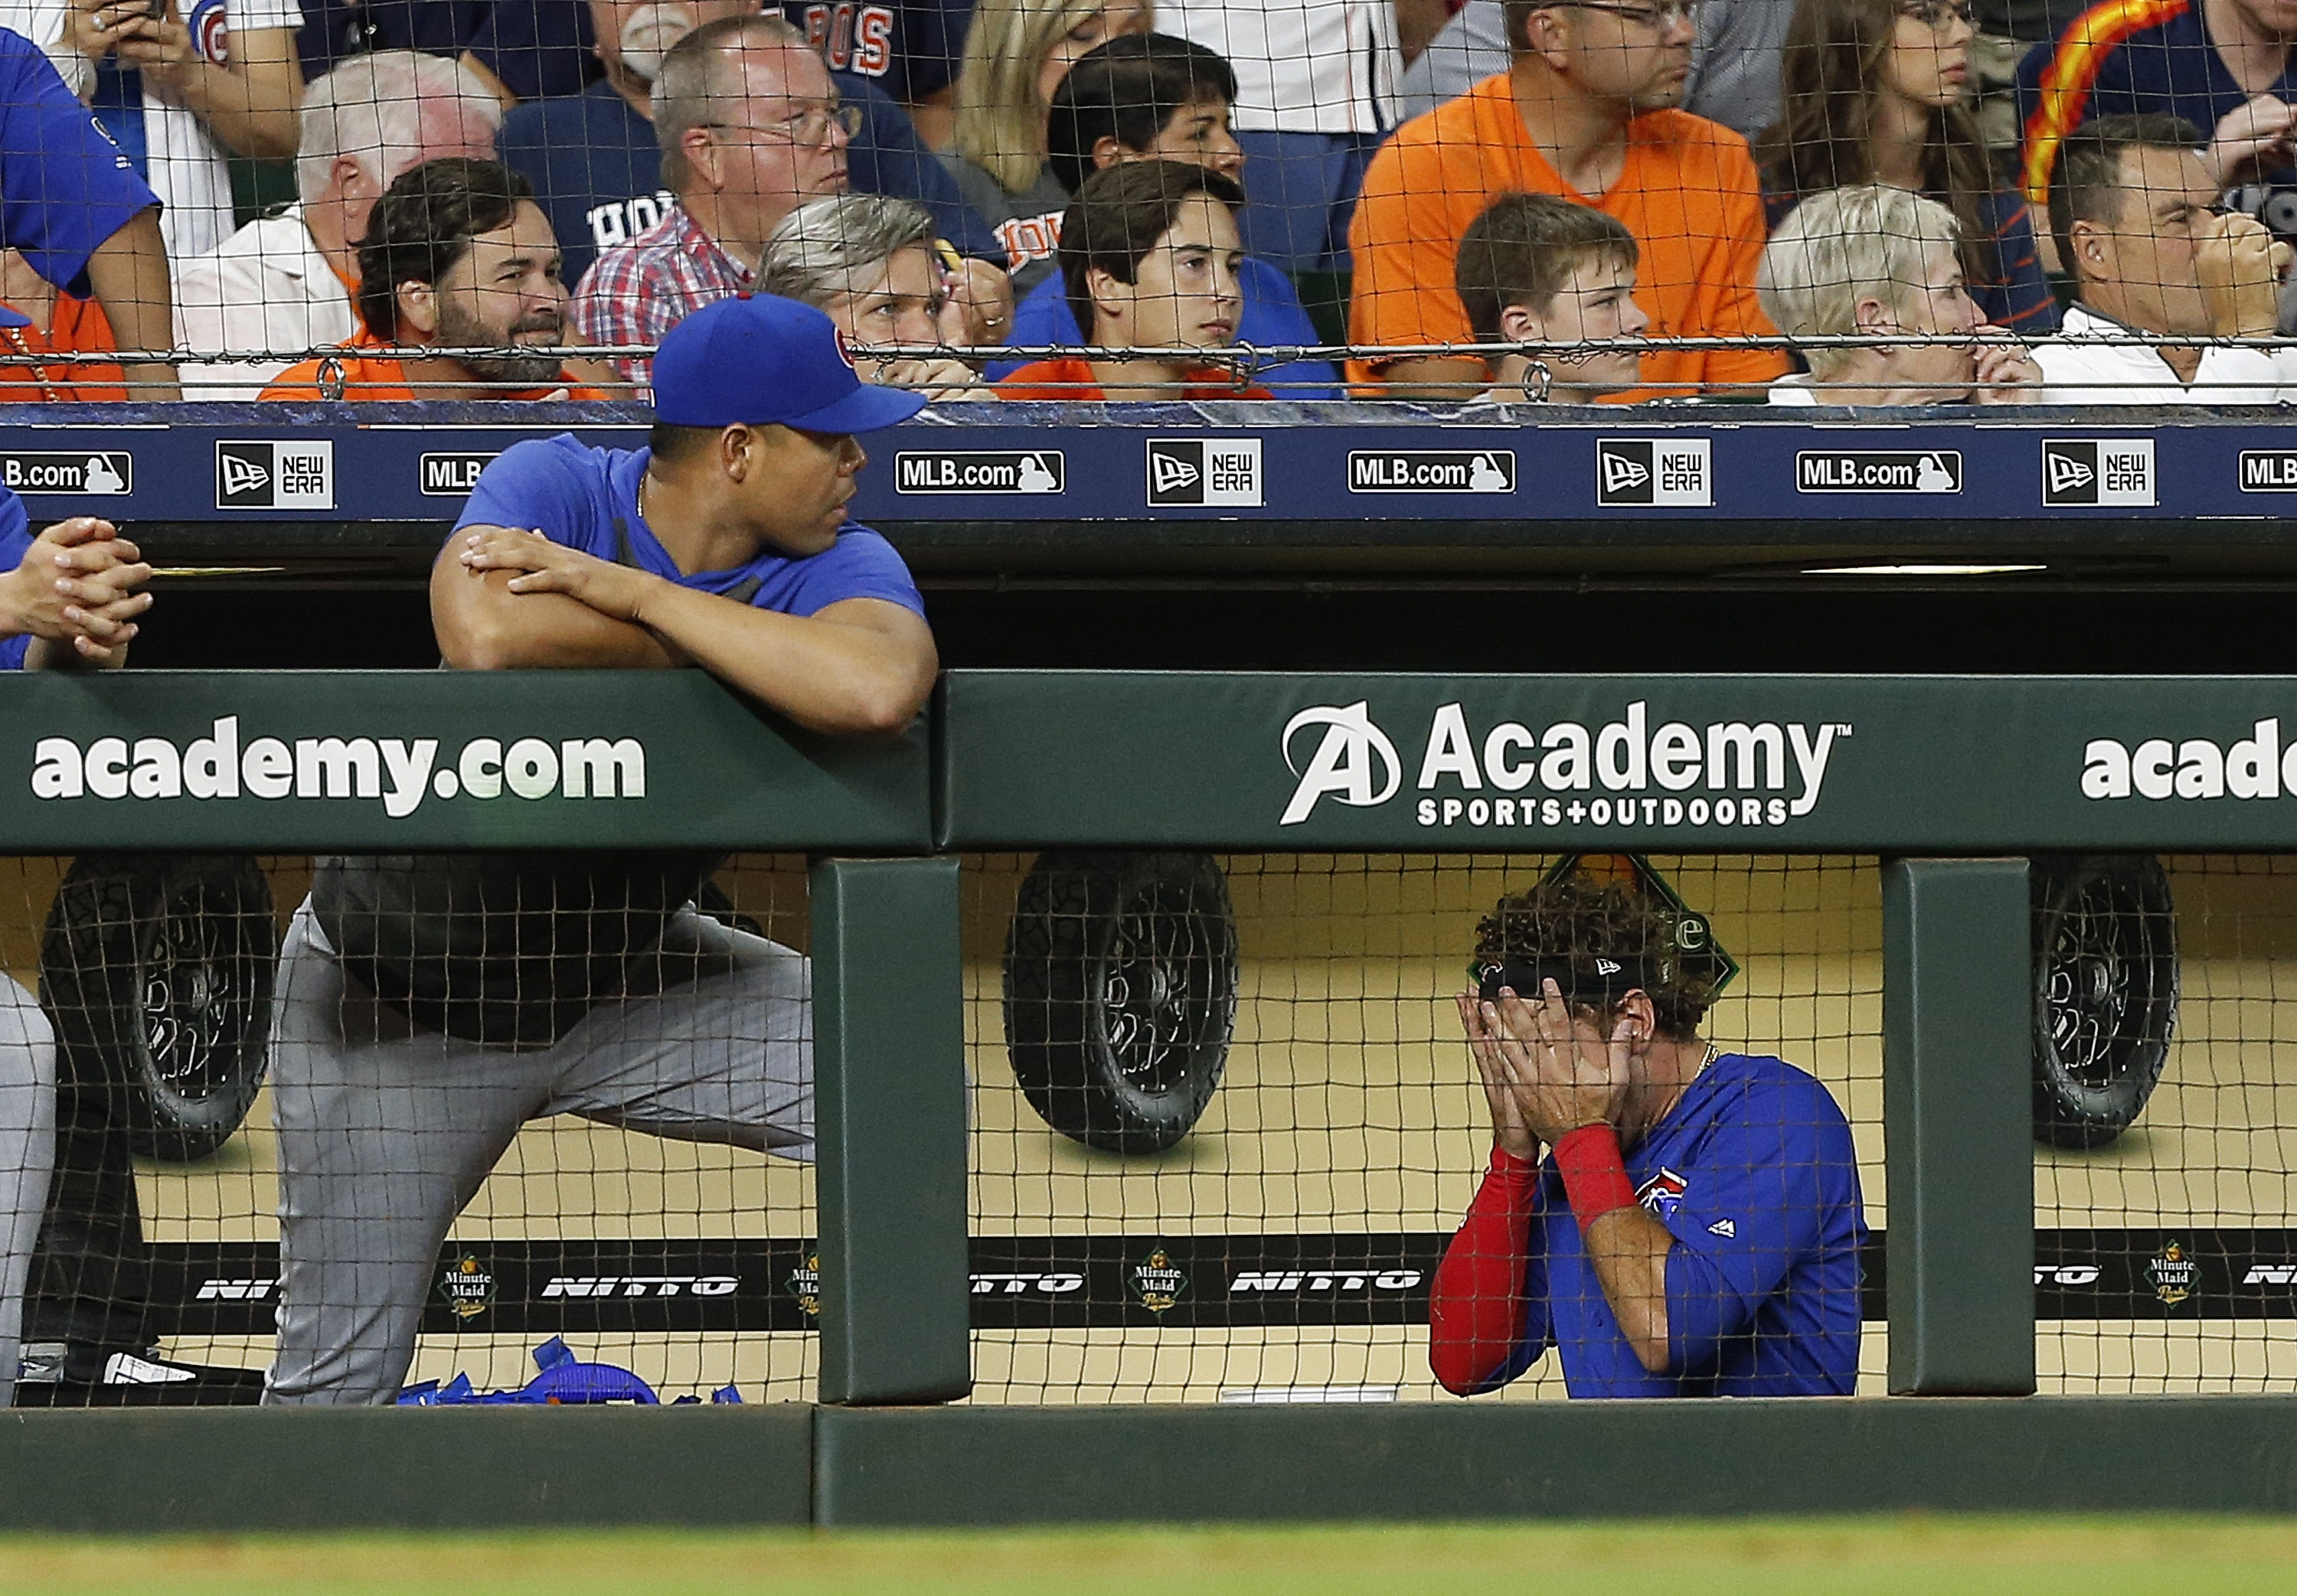 Albert Almora was visibly distraught when he realized his foul ball hit and injured a young fan.